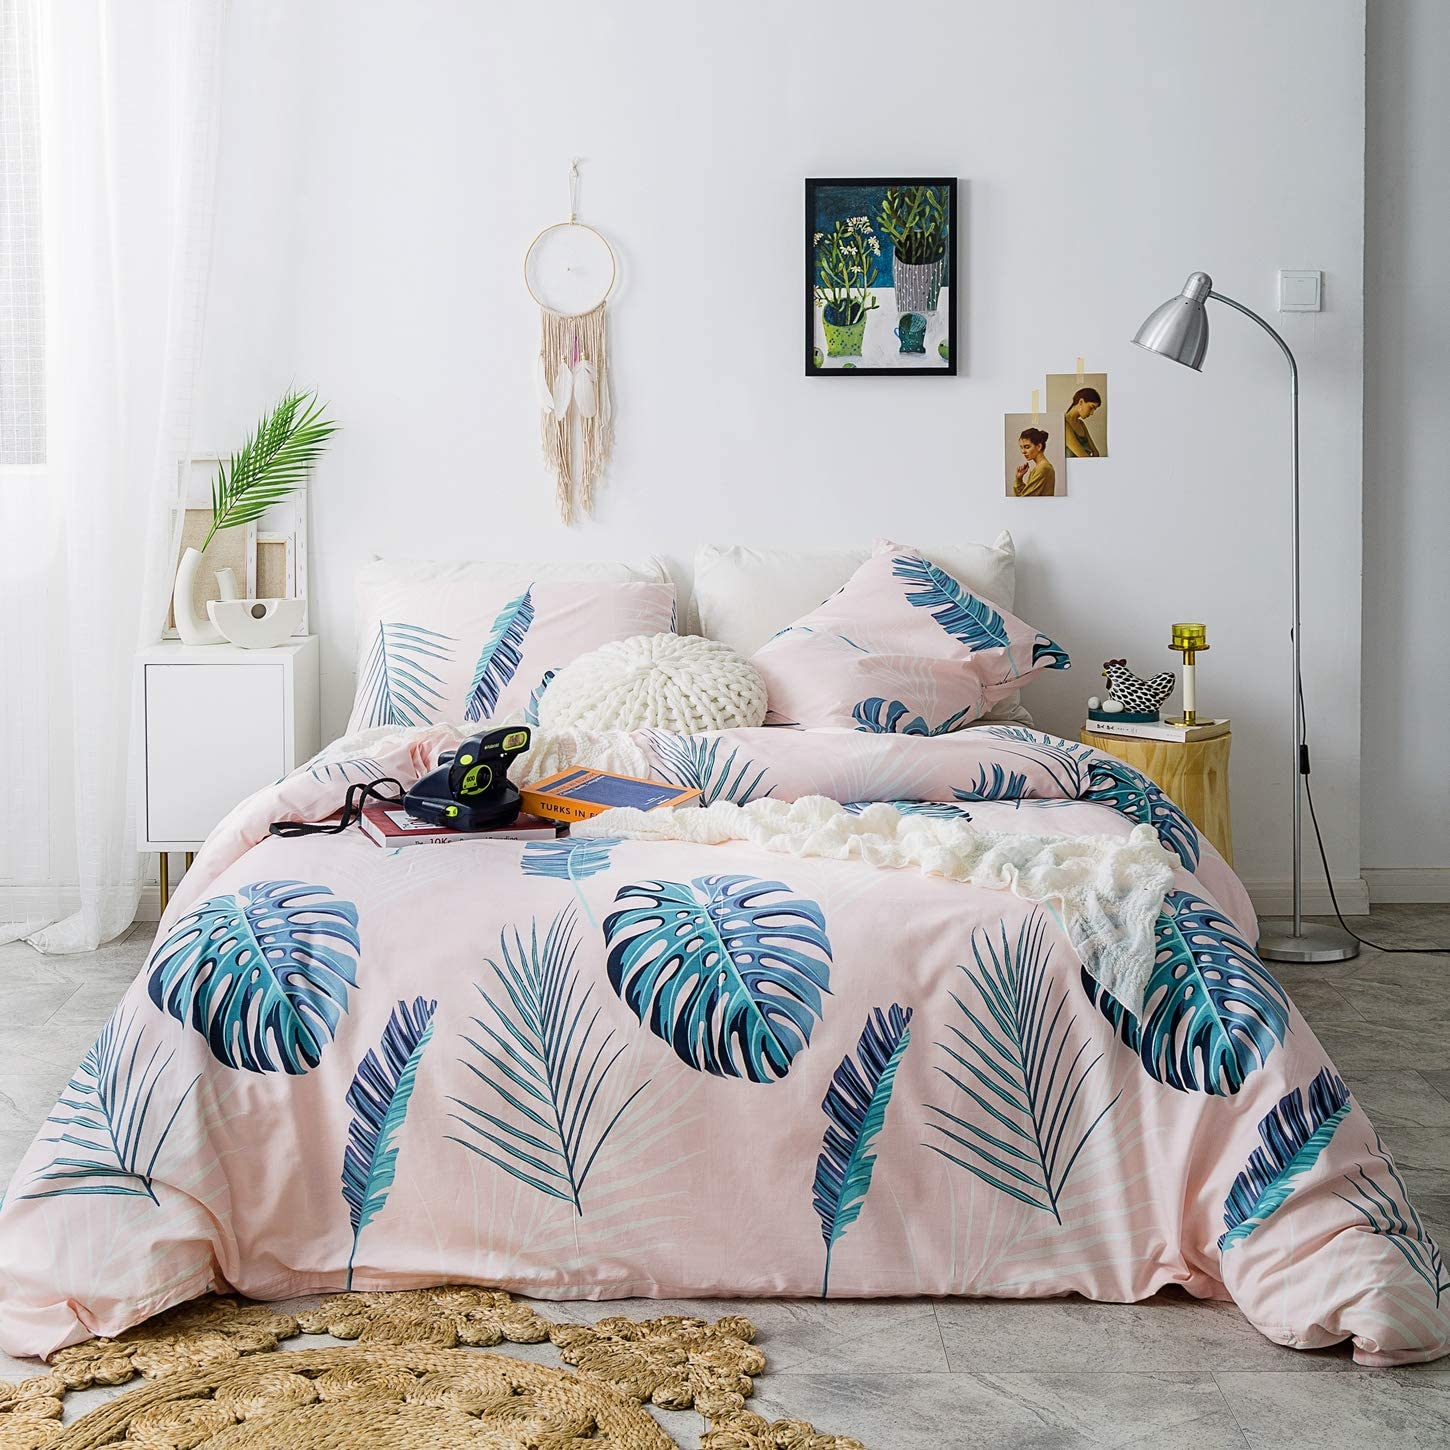 SUSYBAO 3 Pieces Duvet Cover Set 100% Natural Cotton Peachpuff Queen Size Monstera Leaf Bedding Set with Zipper Ties 1 Green Palm Tree Leaves Duvet Cover 2 Pillowcases Luxury Quality Soft Comfortable